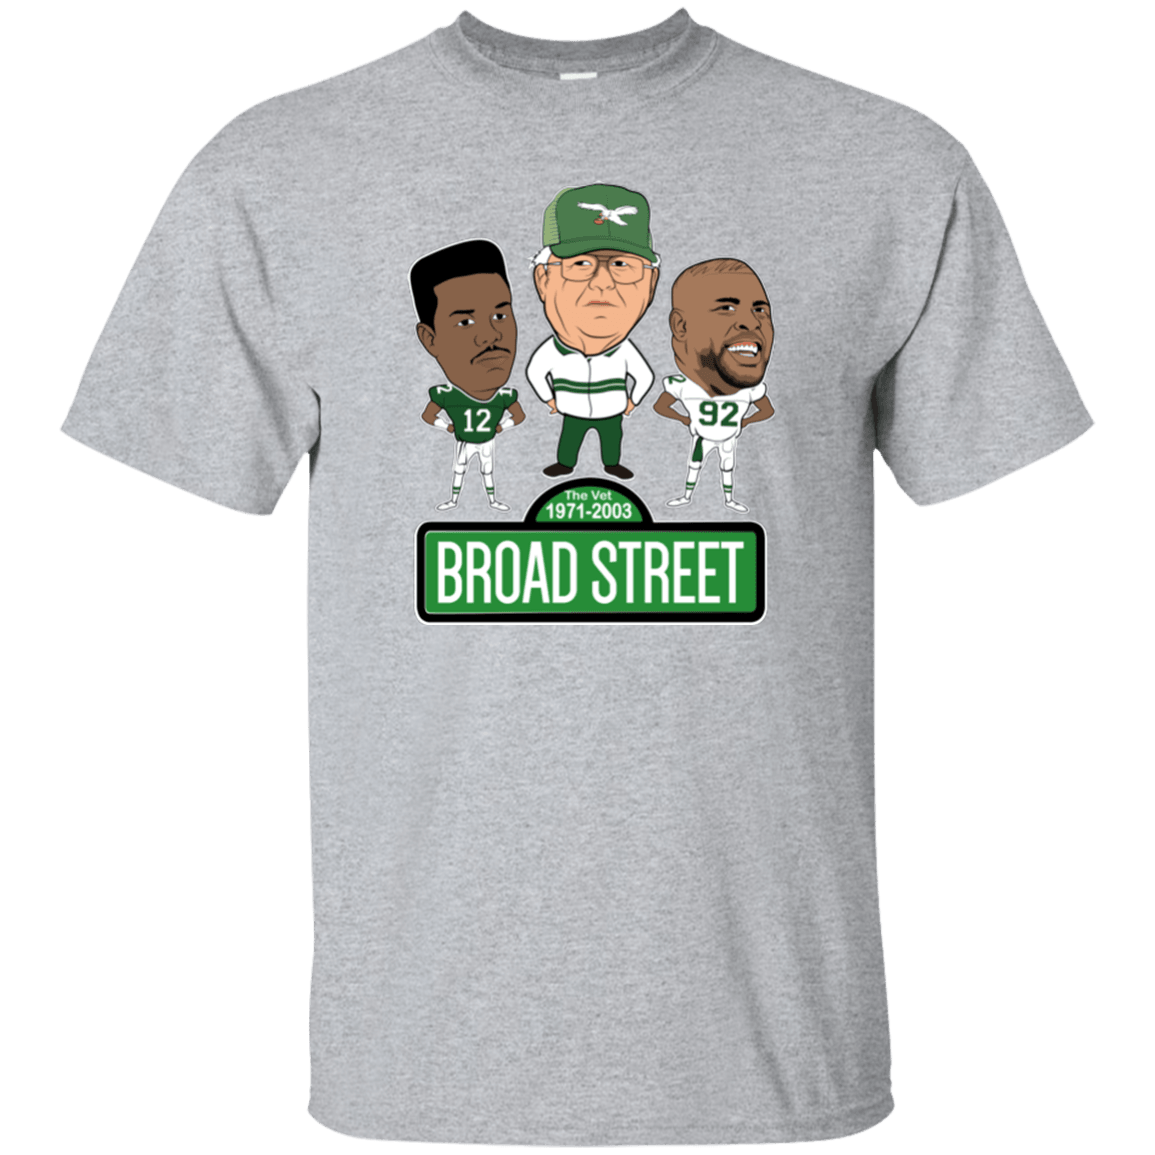 Cyber Special Broad Street Football T-Shirt